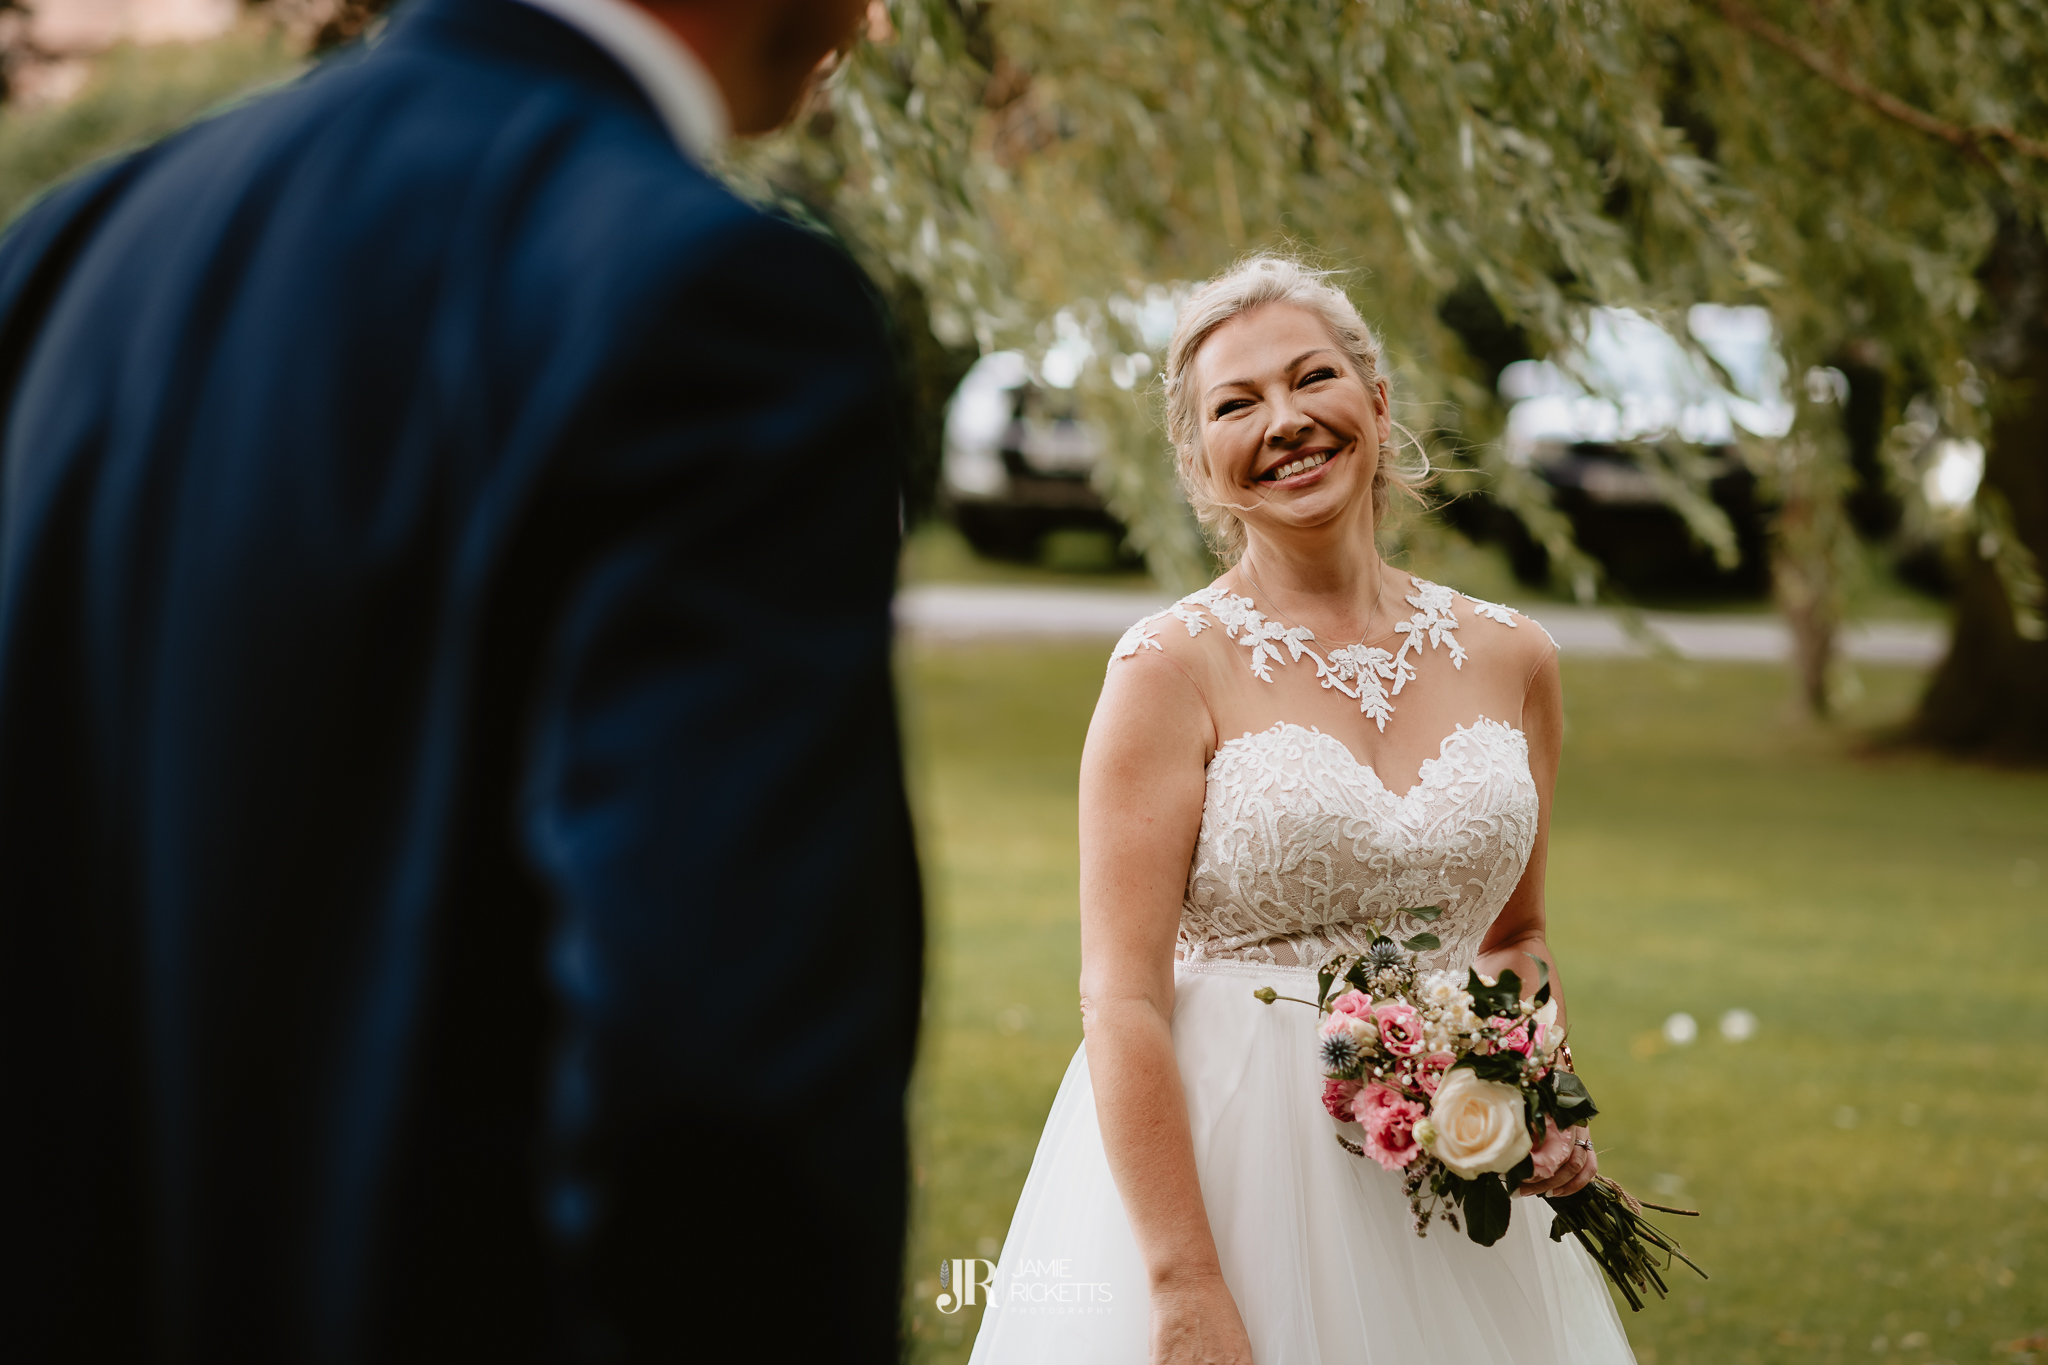 Wroxeter-Hotel-Wedding-Photography-In-Shropshire-By-Shropshire-Wedding-Photographer-Jamie-Ricketts-121.JPG